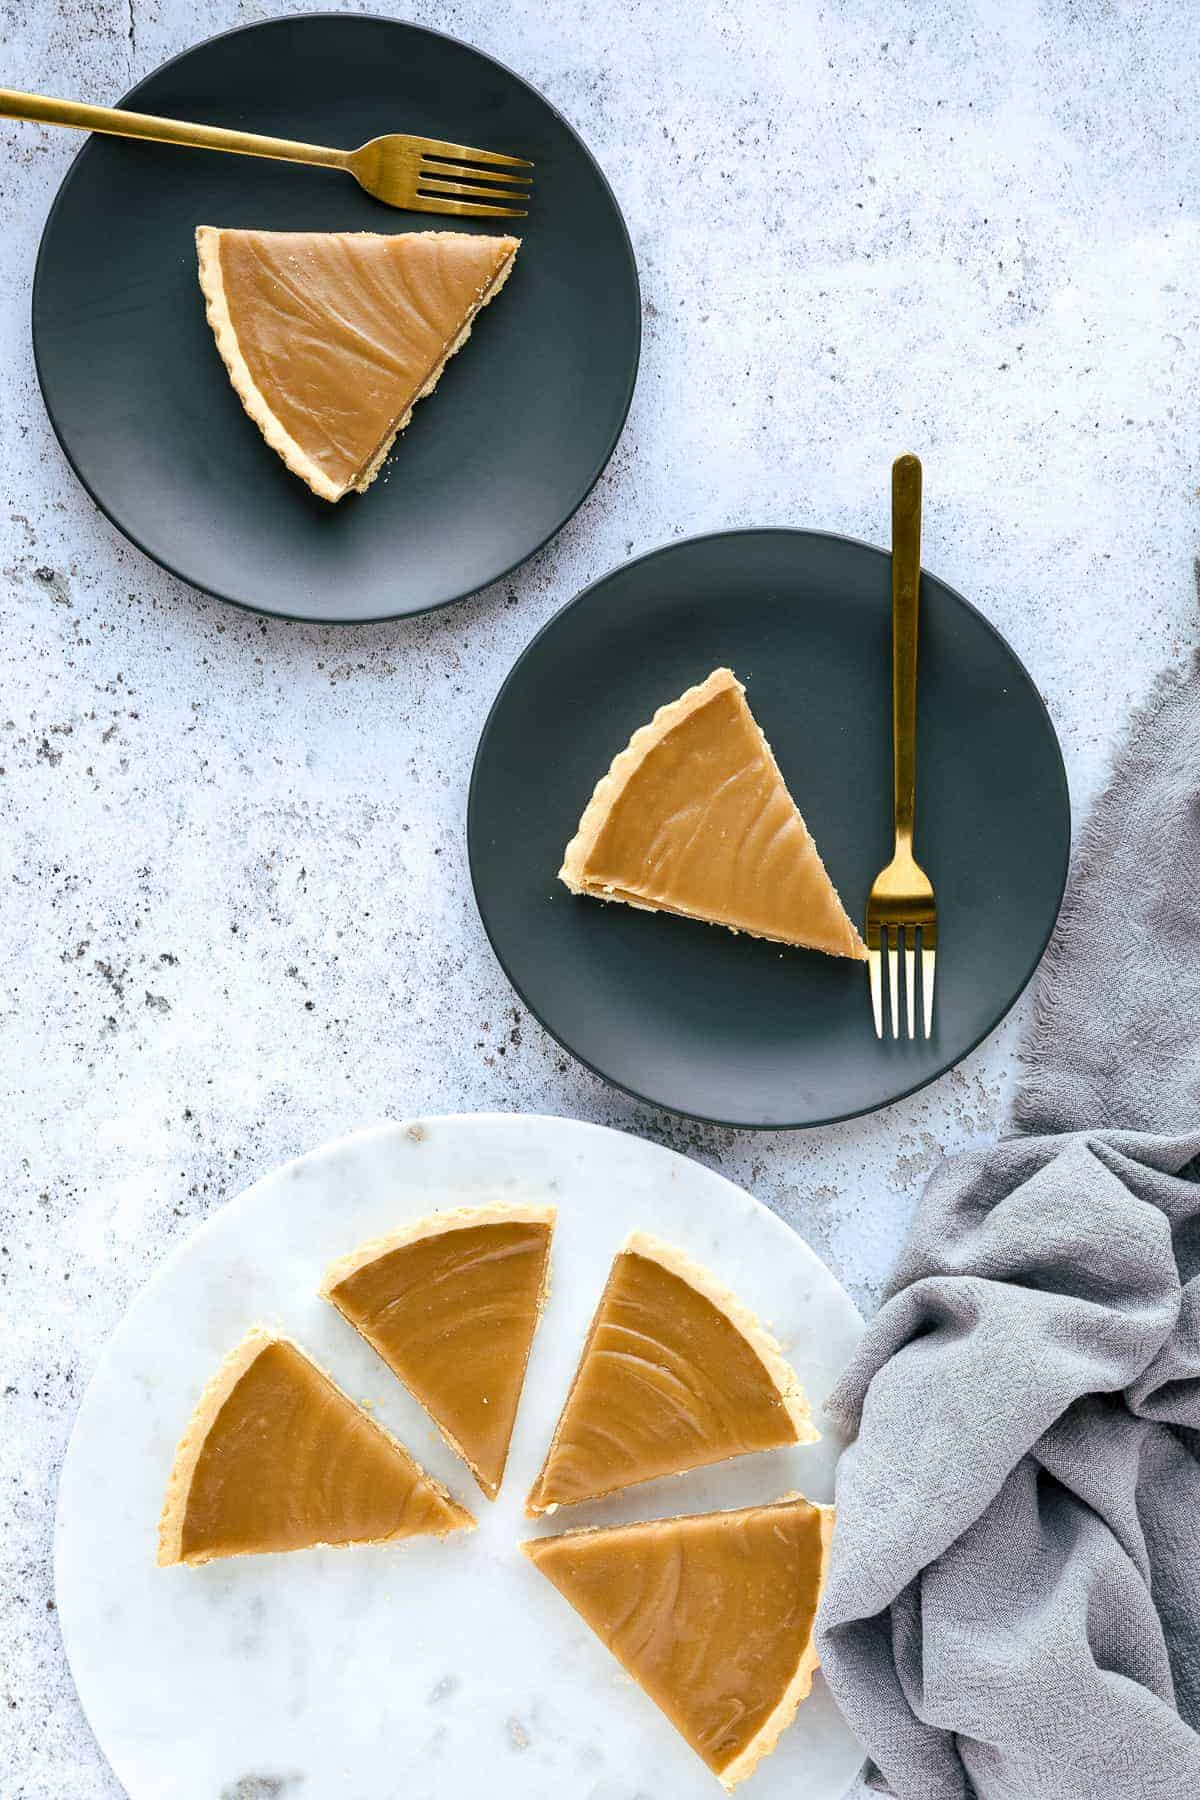 A Butterscotch Tart that has been sliced, there are two pieces on small grey plates and the rest is on a white marble chopping board.